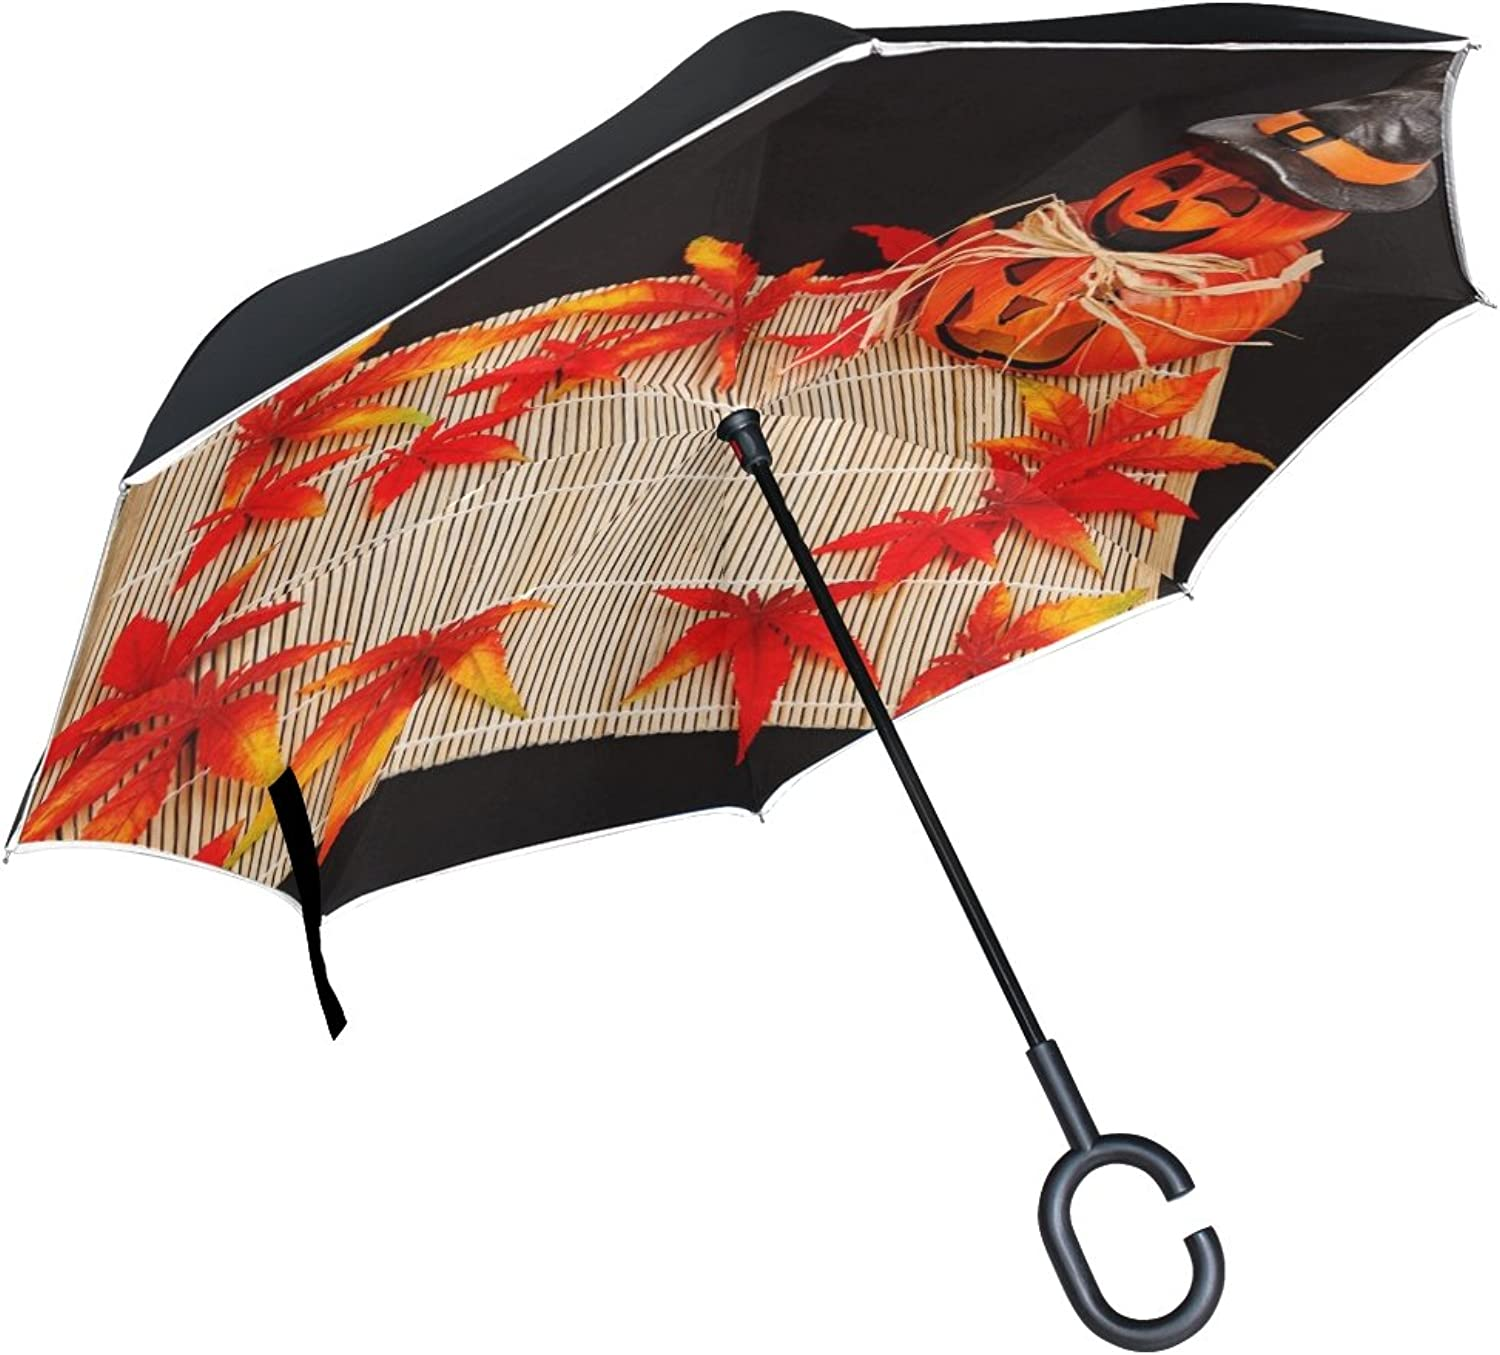 Double Layer Ingreened Pumpkin Autumn Dark color Decoration Umbrellas Reverse Folding Umbrella Windproof Uv Predection Big Straight Umbrella for Car Rain Outdoor with CShaped Handle